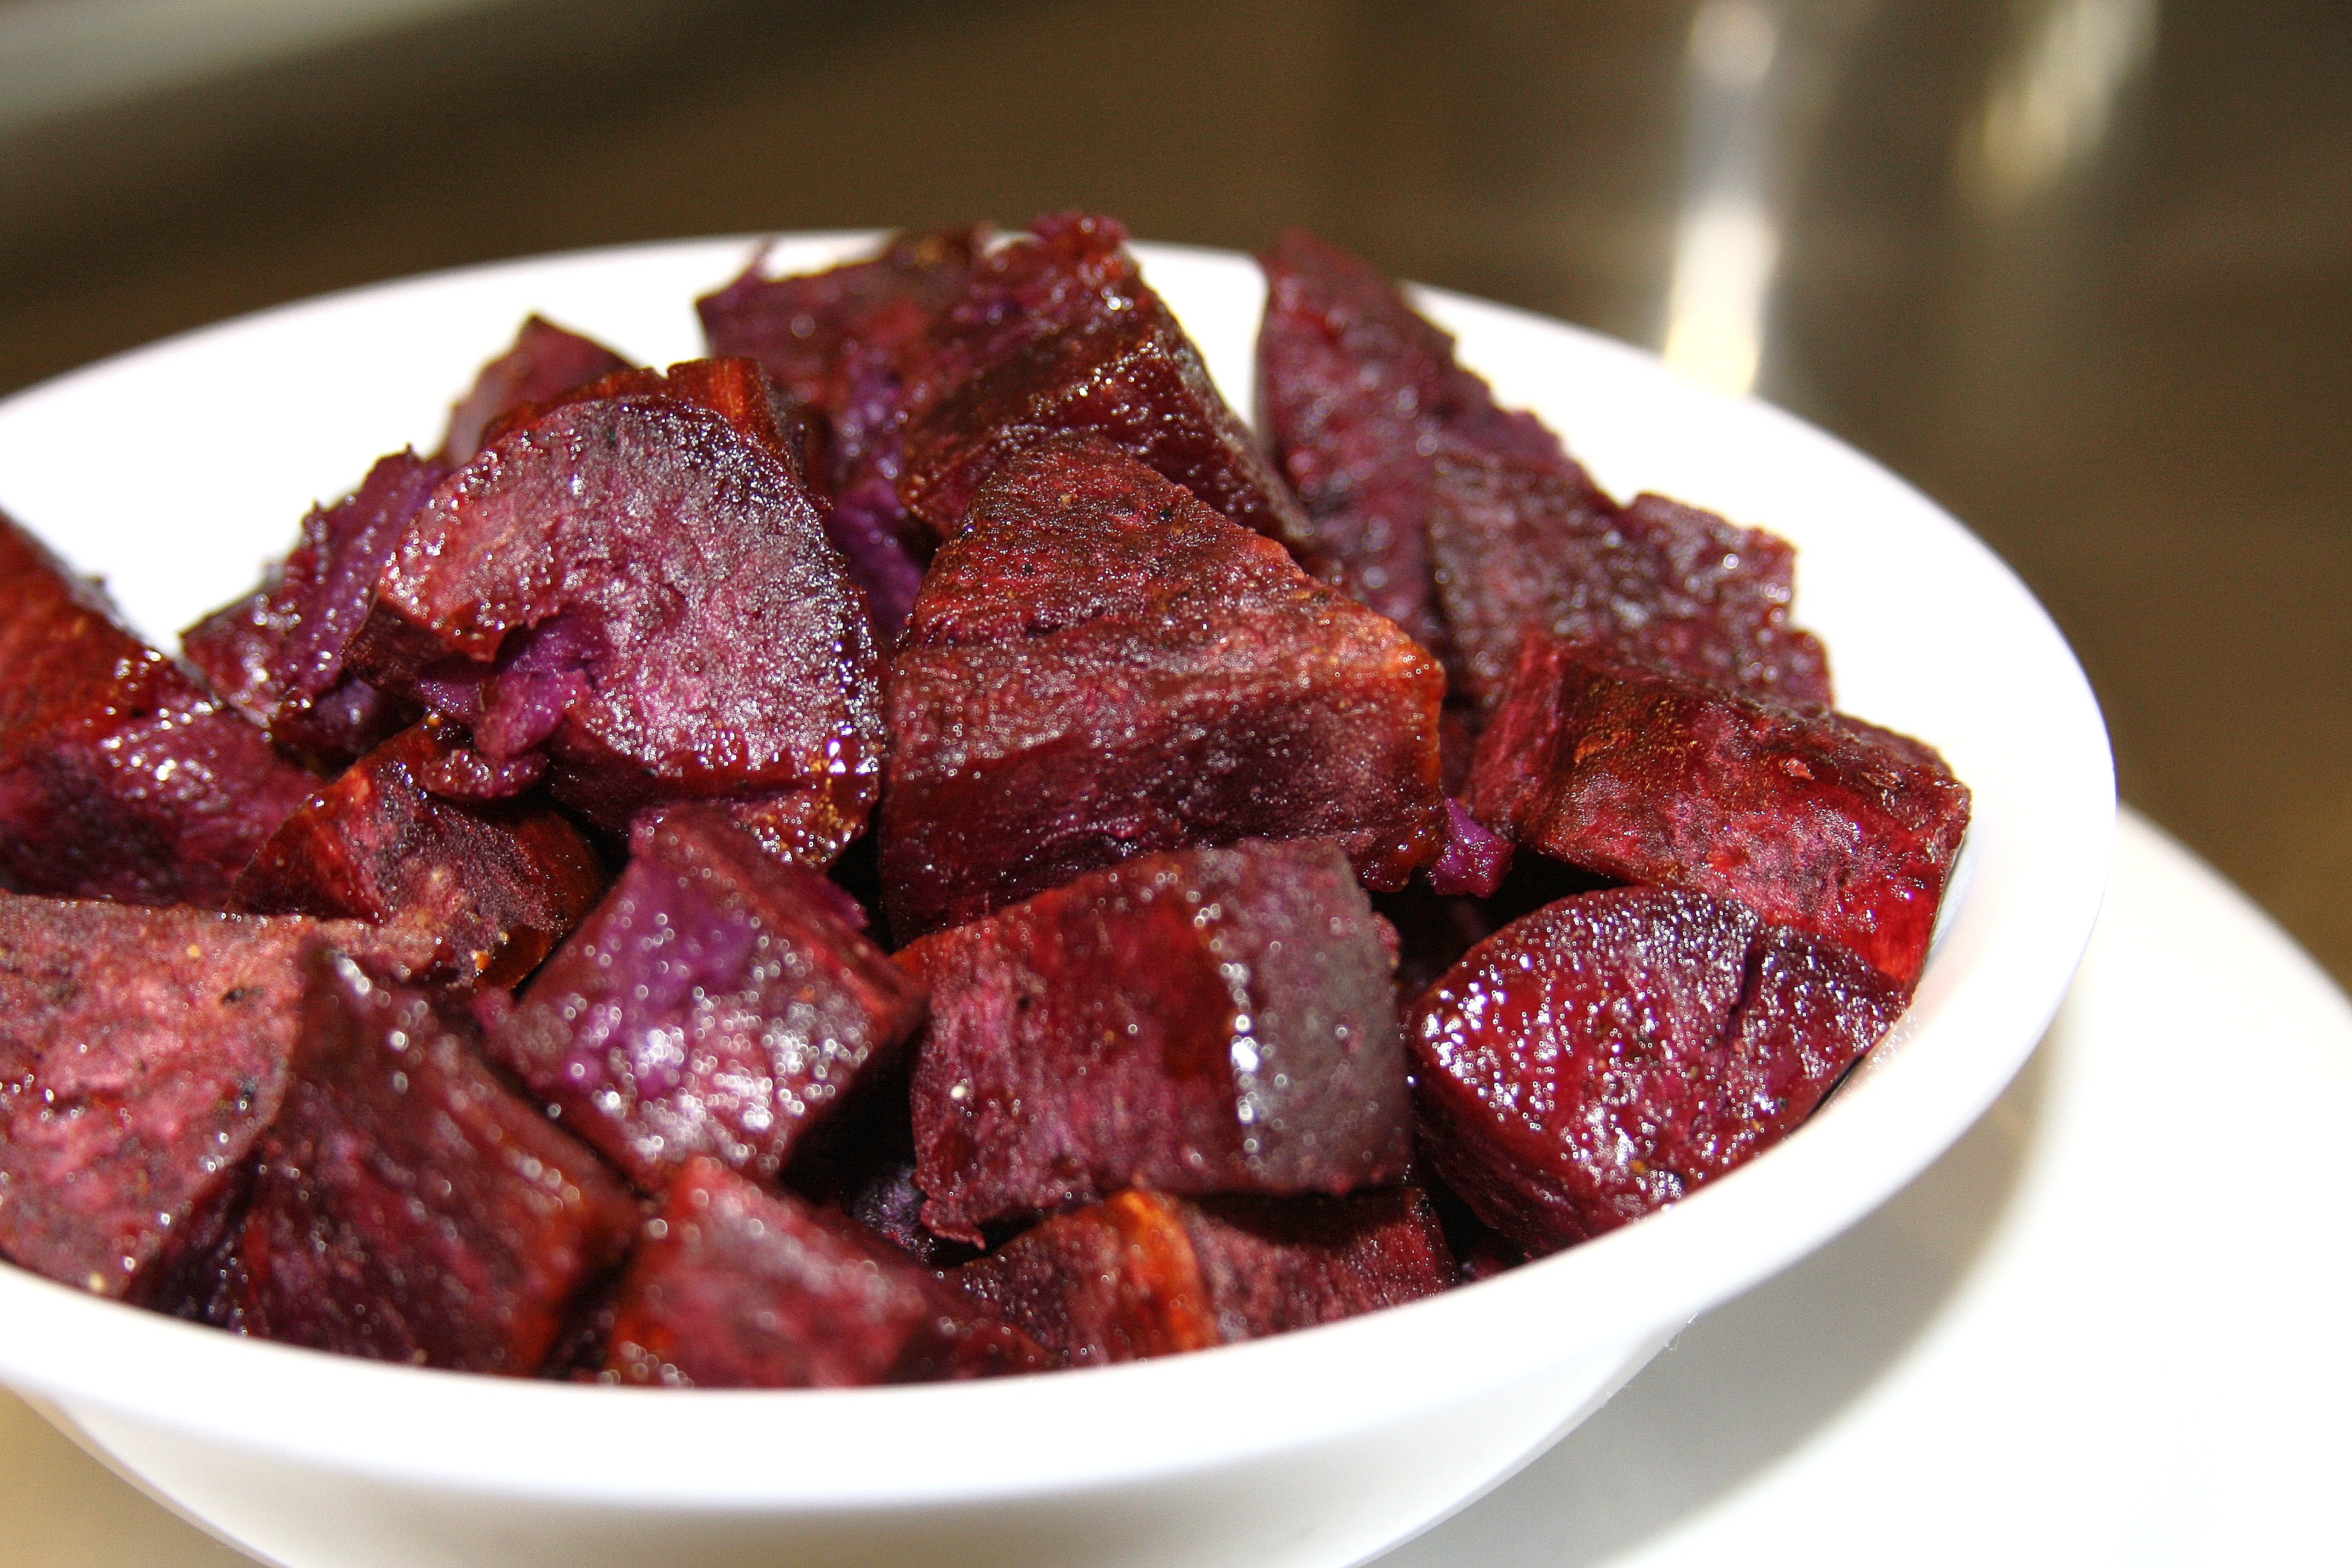 Roasted Purple Sweet Potatoes with Honey Glaze © Sassy Sampler 2013